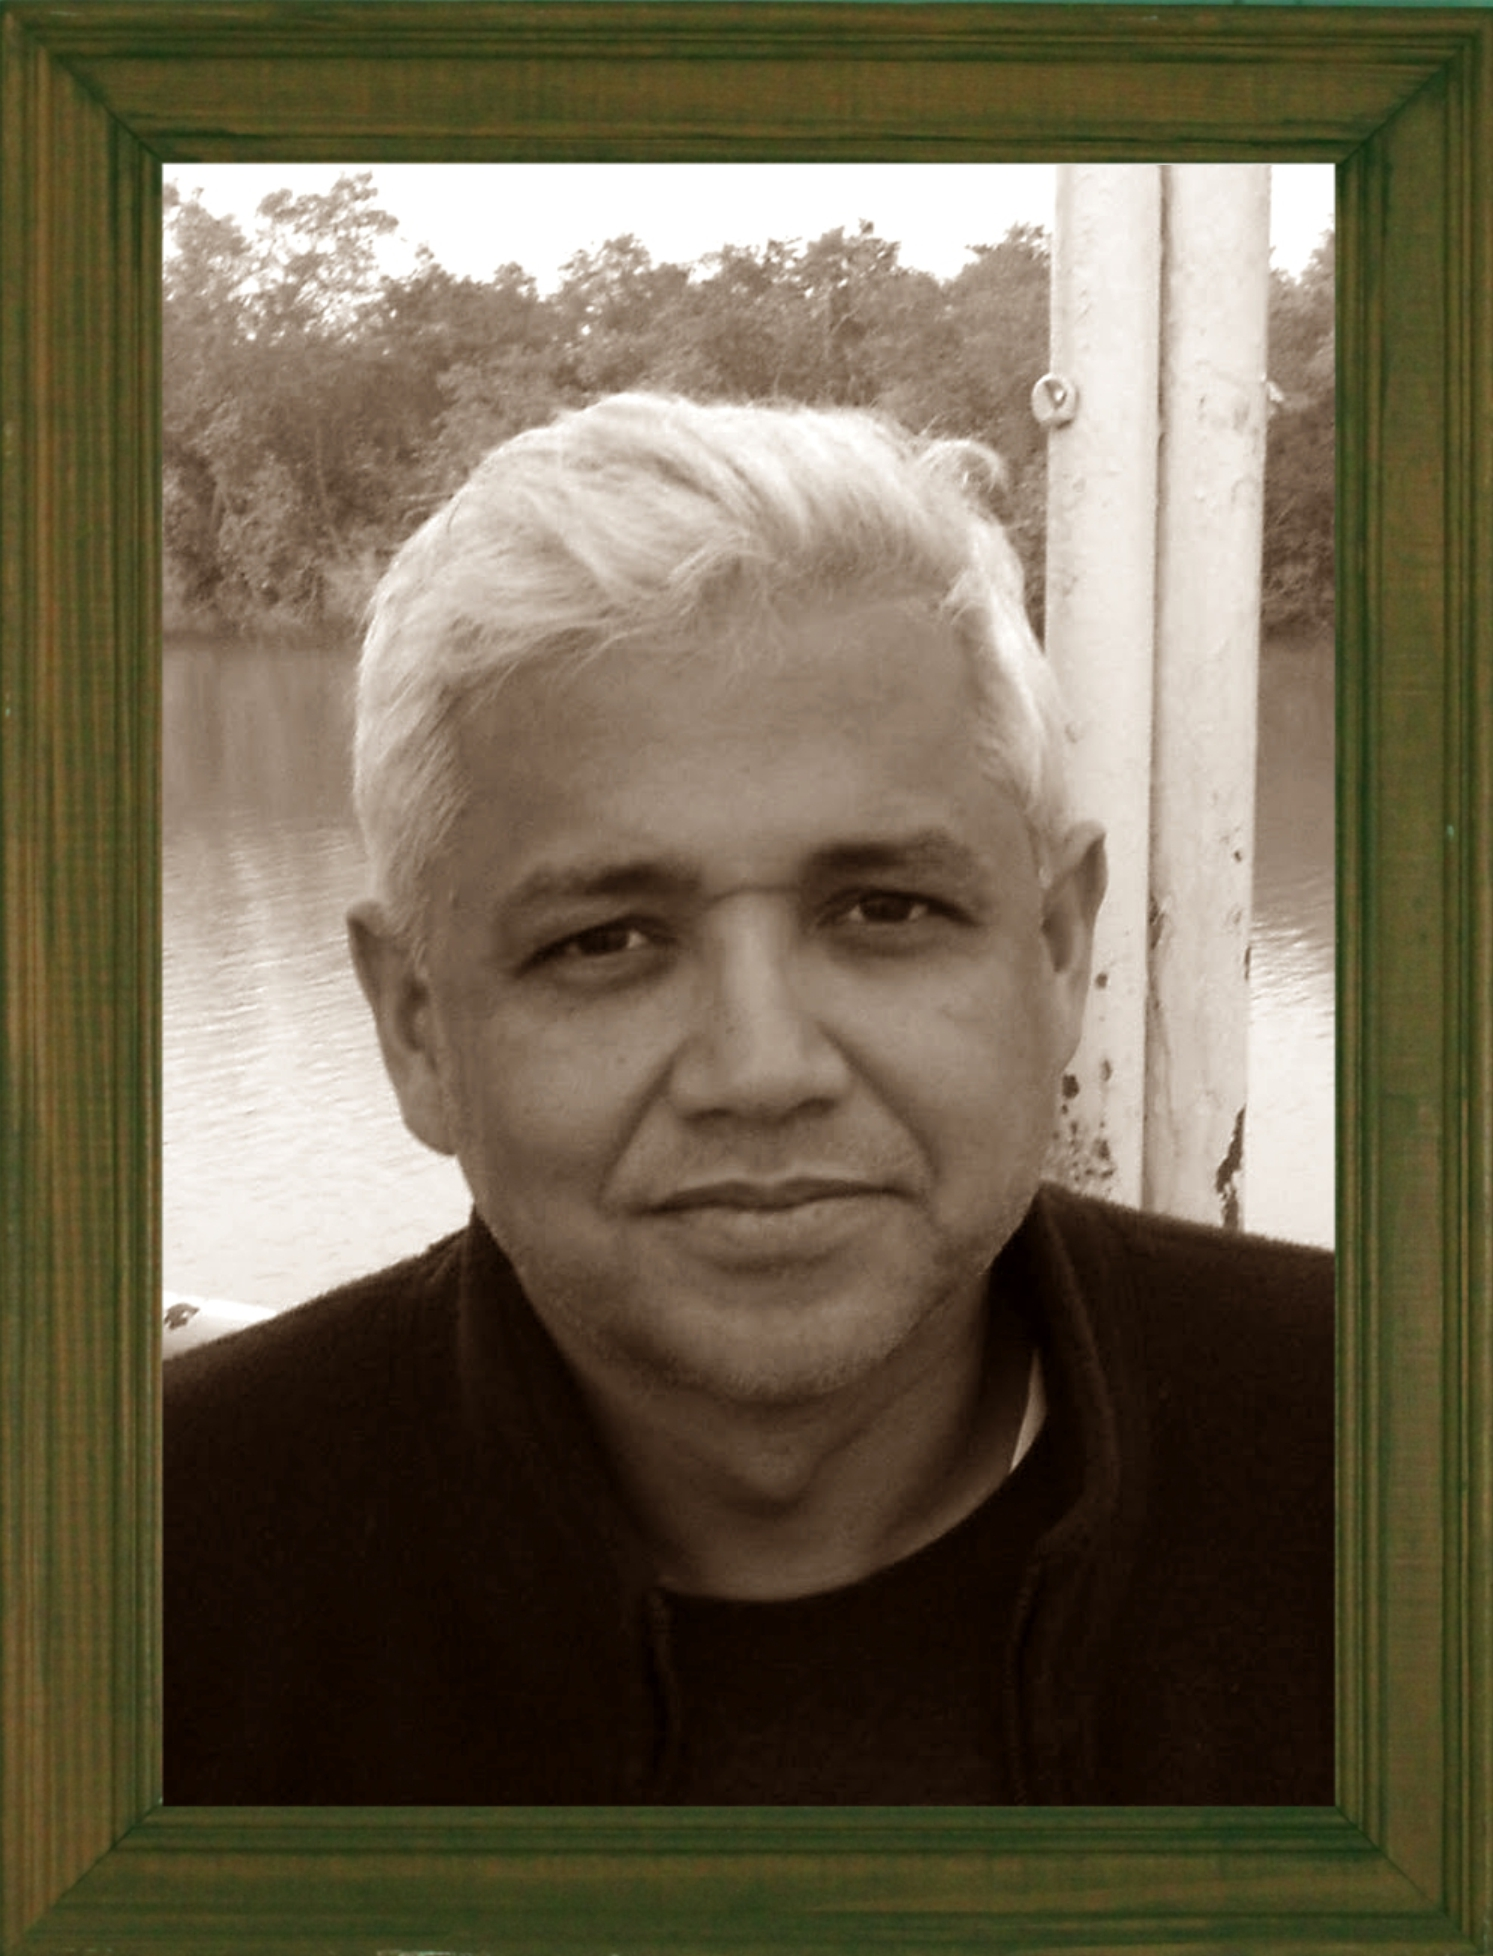 amitav ghosh Novelist amitav ghosh wonders why this staggering reality has yet to find its way not only into our daily consciousness and decision-making but also into our literature in his gripping nonfiction work the great derangement: climate change and the unthinkable, ghosh summons our imagination.